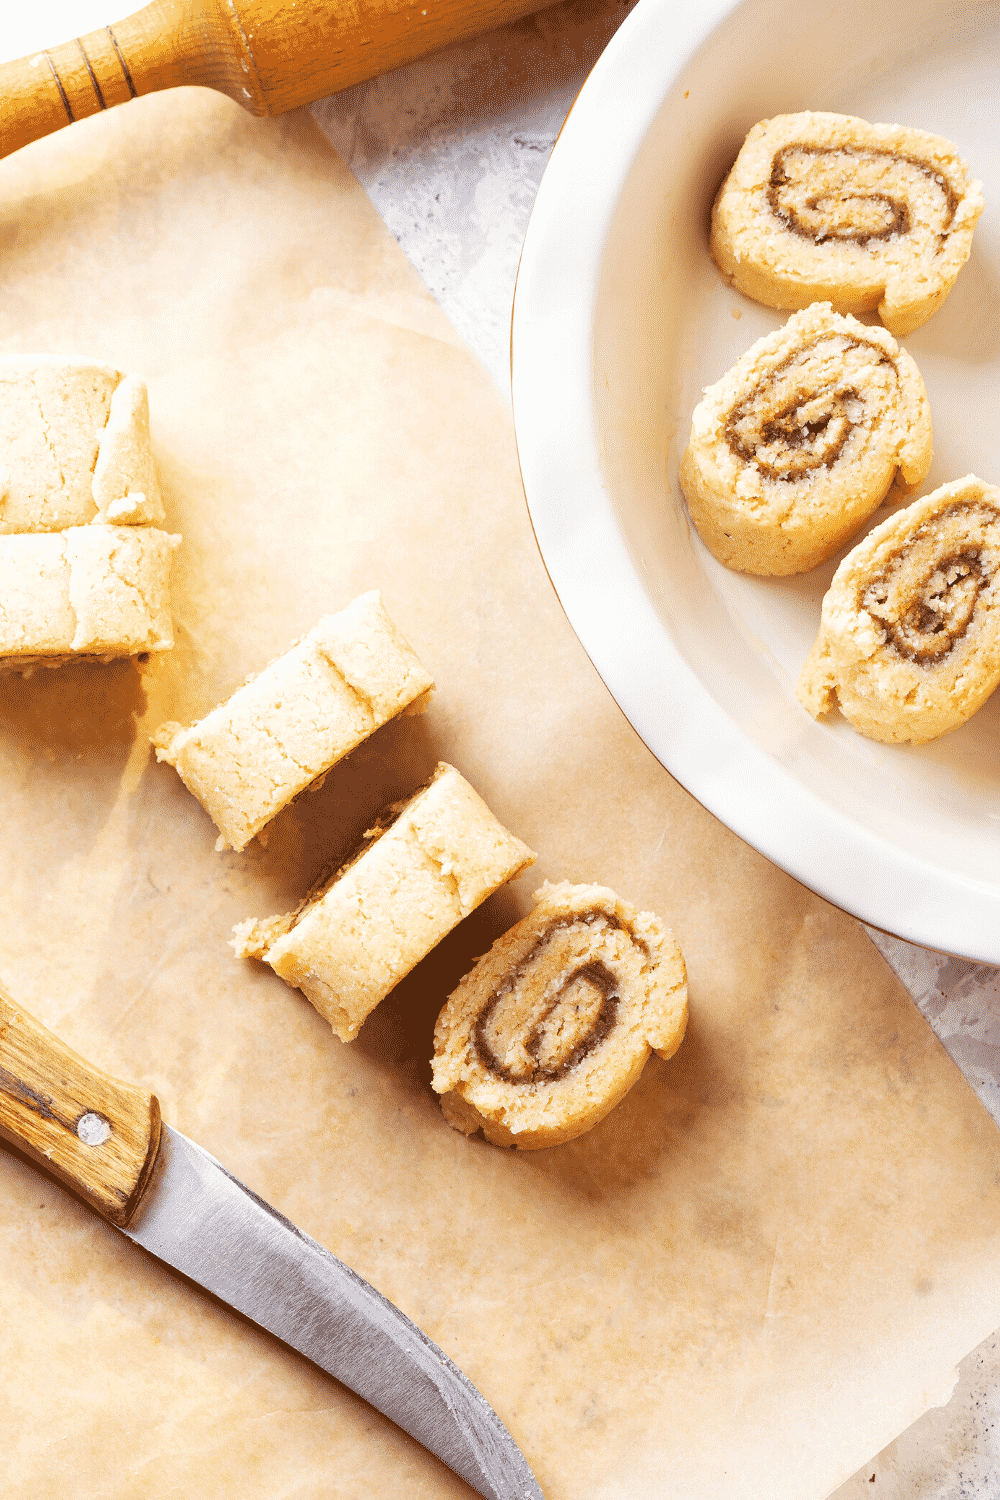 A roll of cinnamon rolls cut into five individual cinnamon rolls on a piece of parchment paper. Three other cut cinnamon rolls are in a white baking dish to the right of the piece of parchment paper.